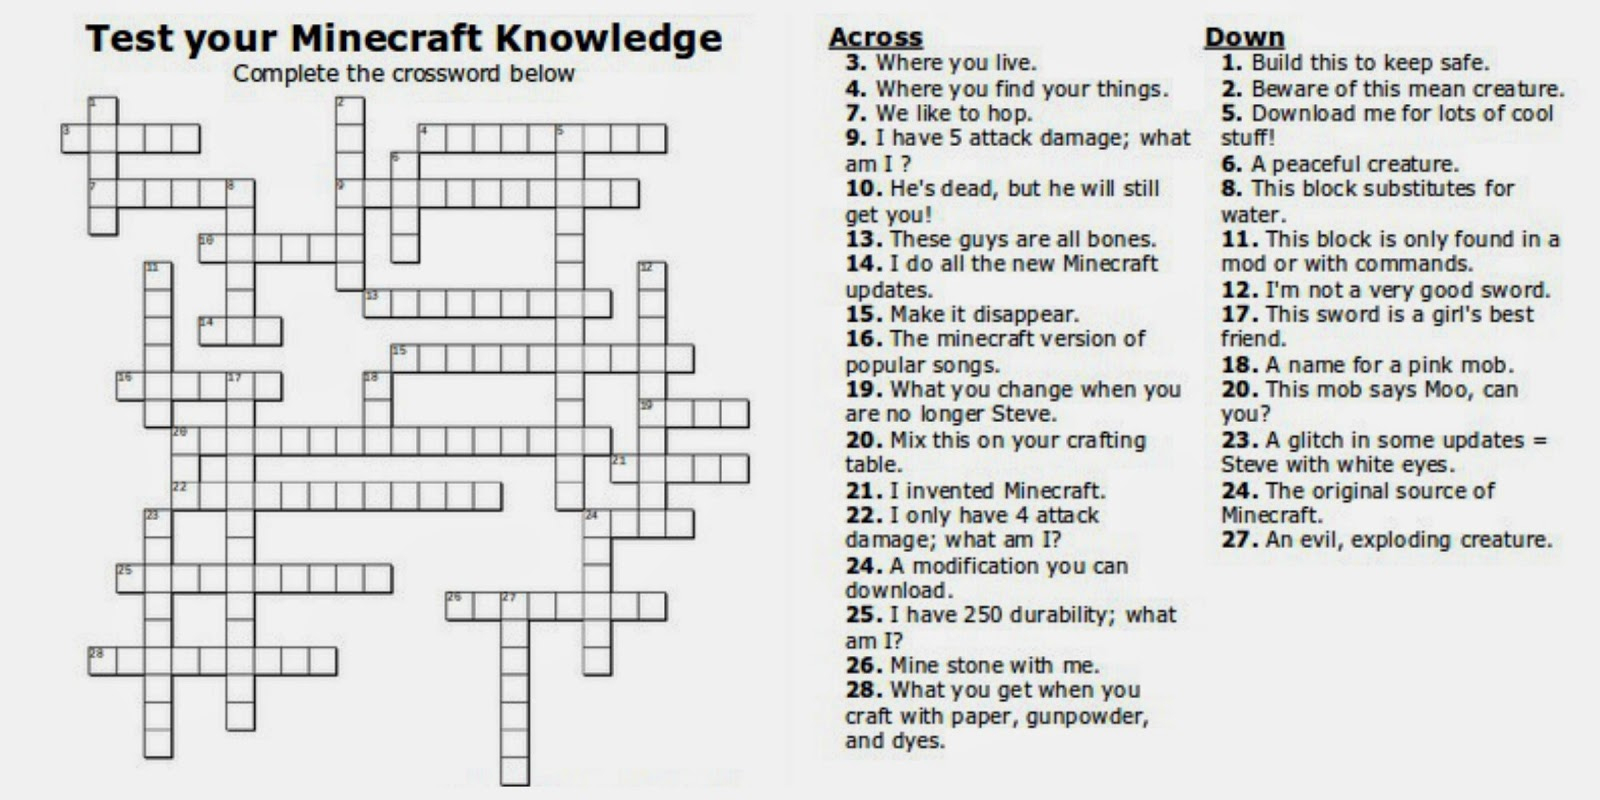 Free Printable Minecraft Crossword Search: Test Your Minecraft - Free Printable Crossword Puzzles For Kids